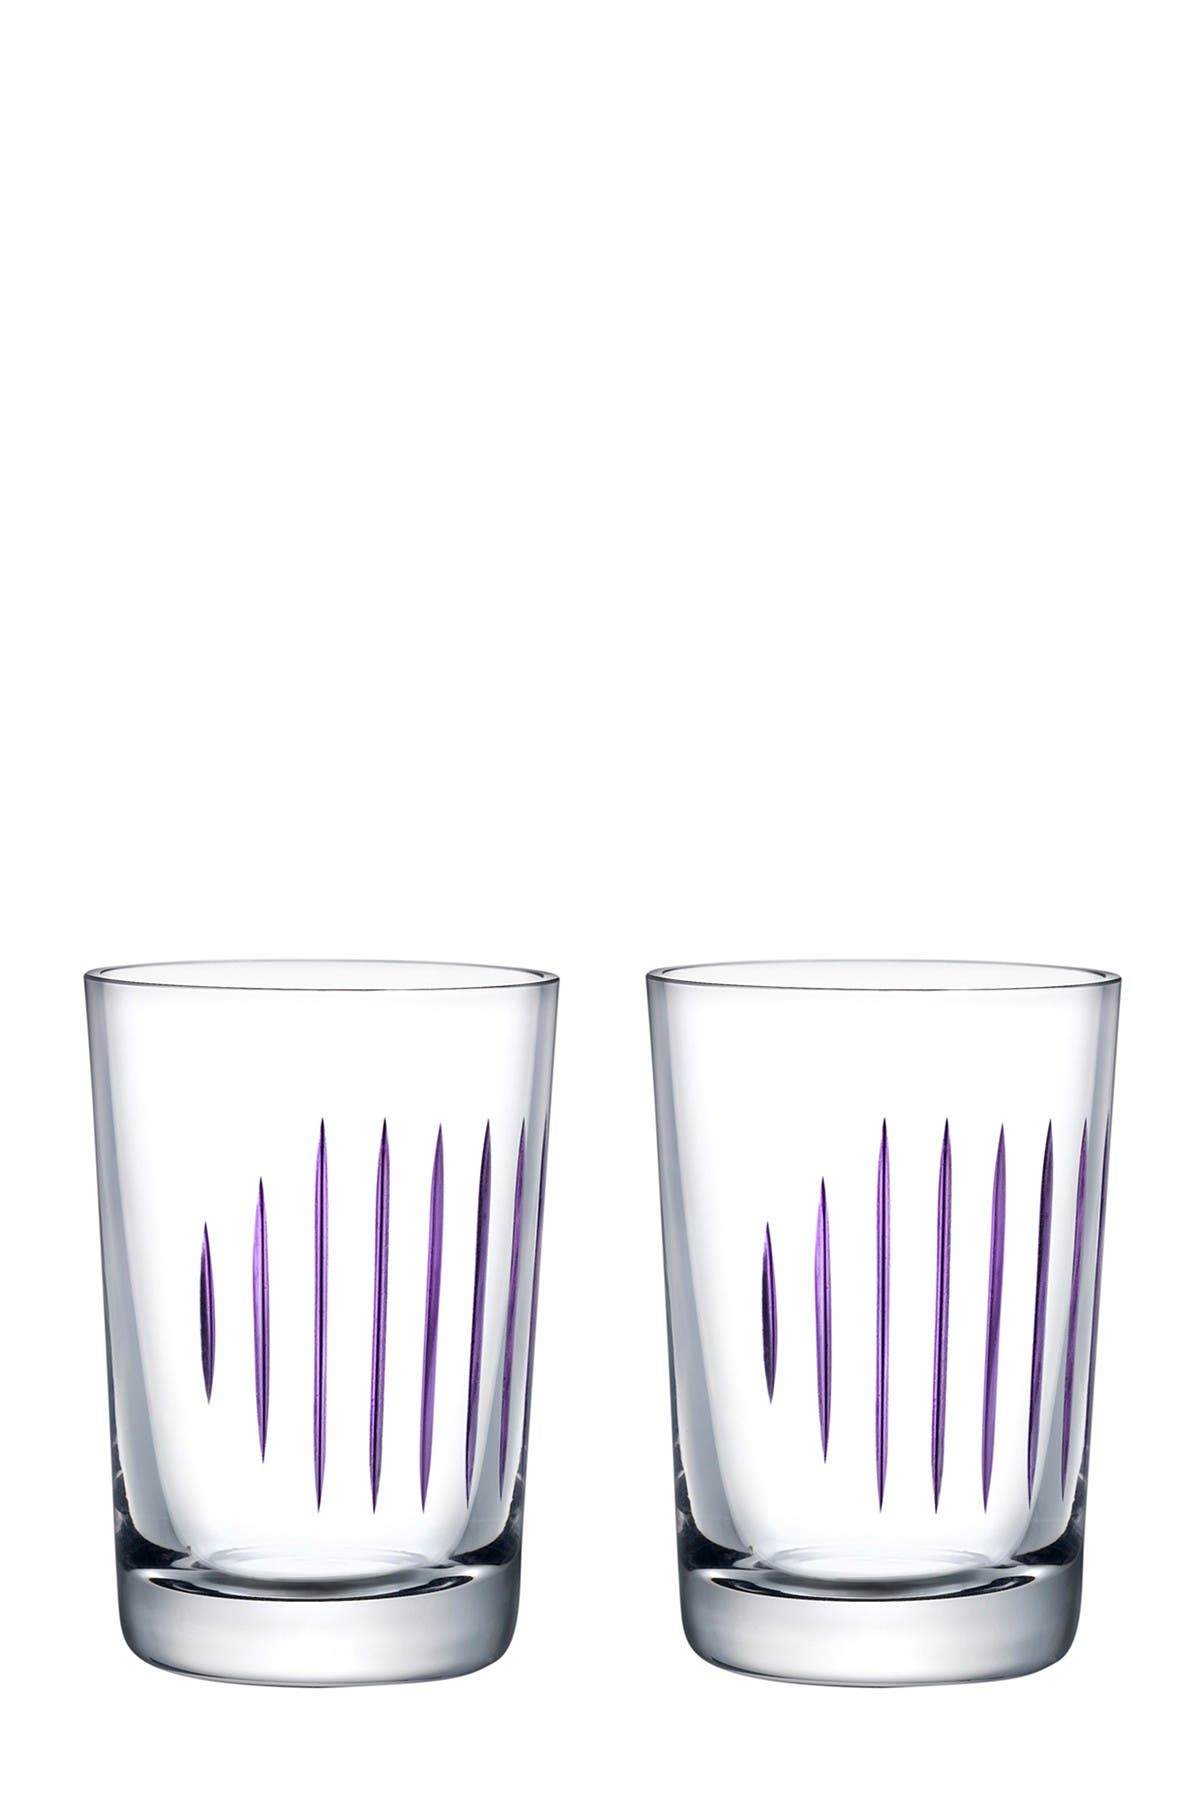 Image of Nude Glass Parrot Water Glasses - Clear - Set of 2